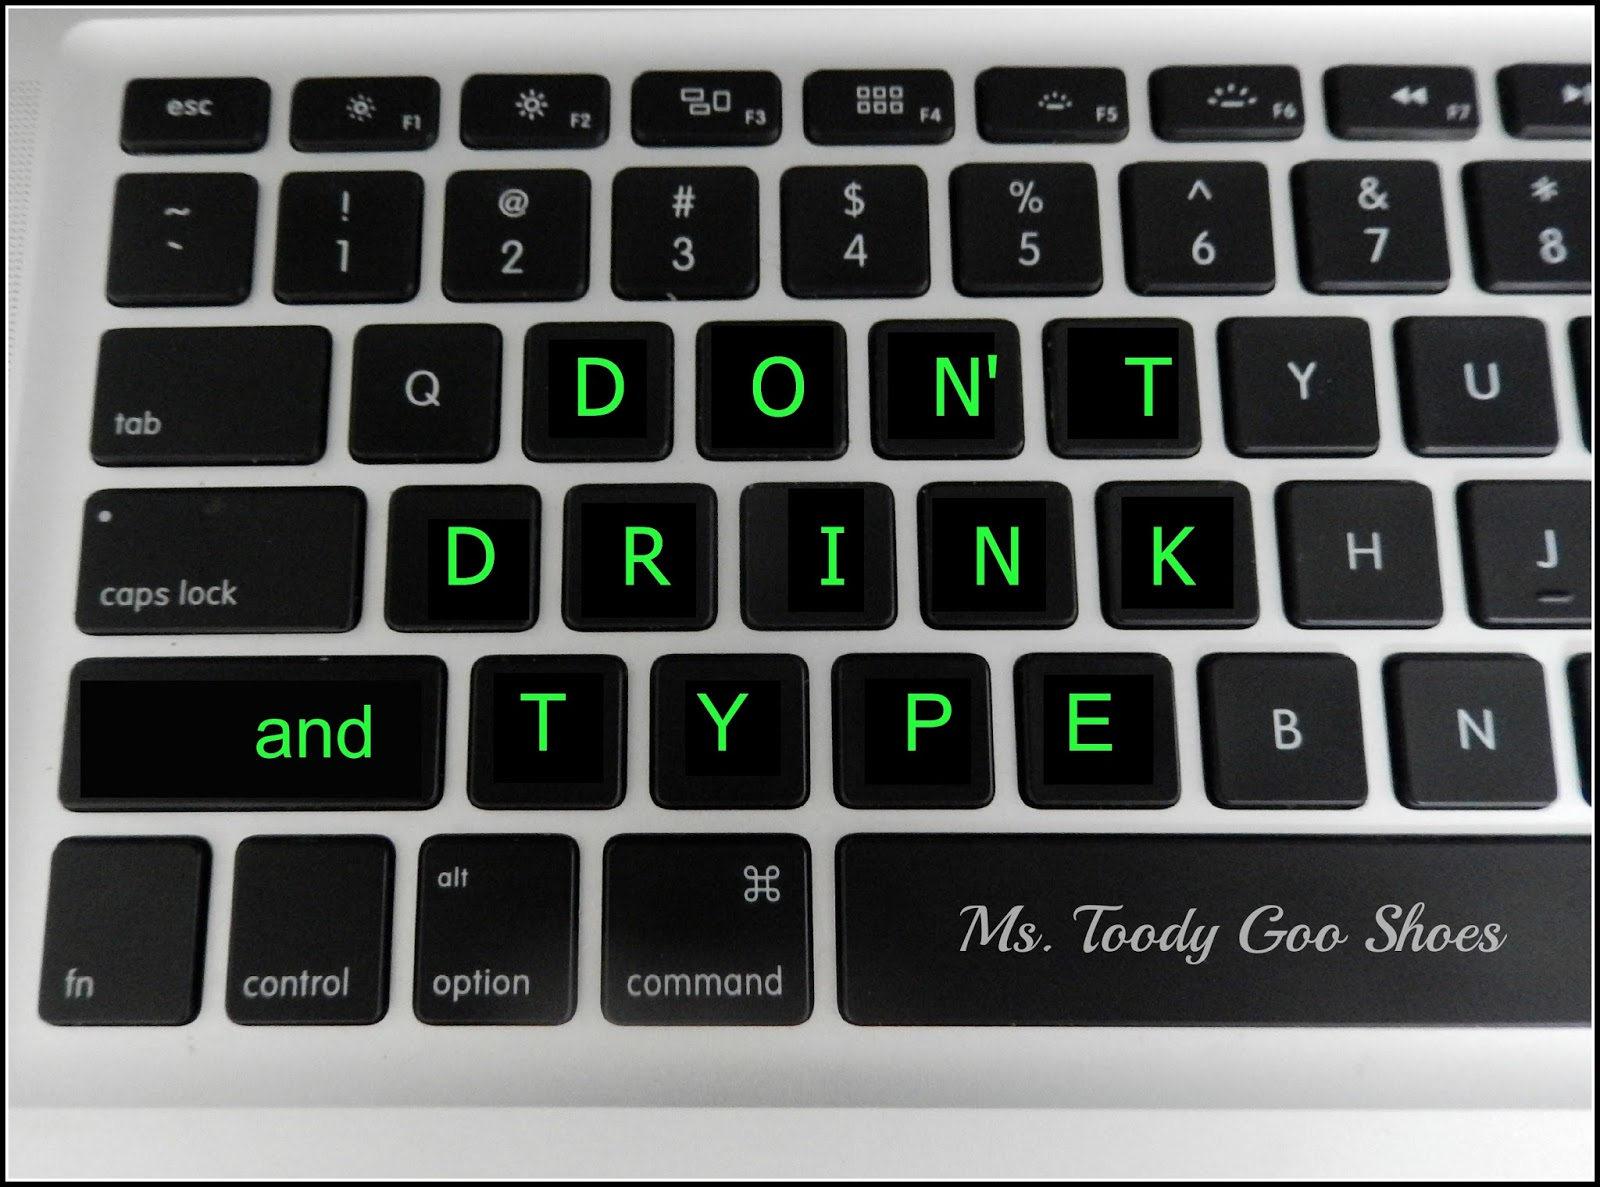 Don't Drink and Type  --- Ms. Toody Goo Shoes